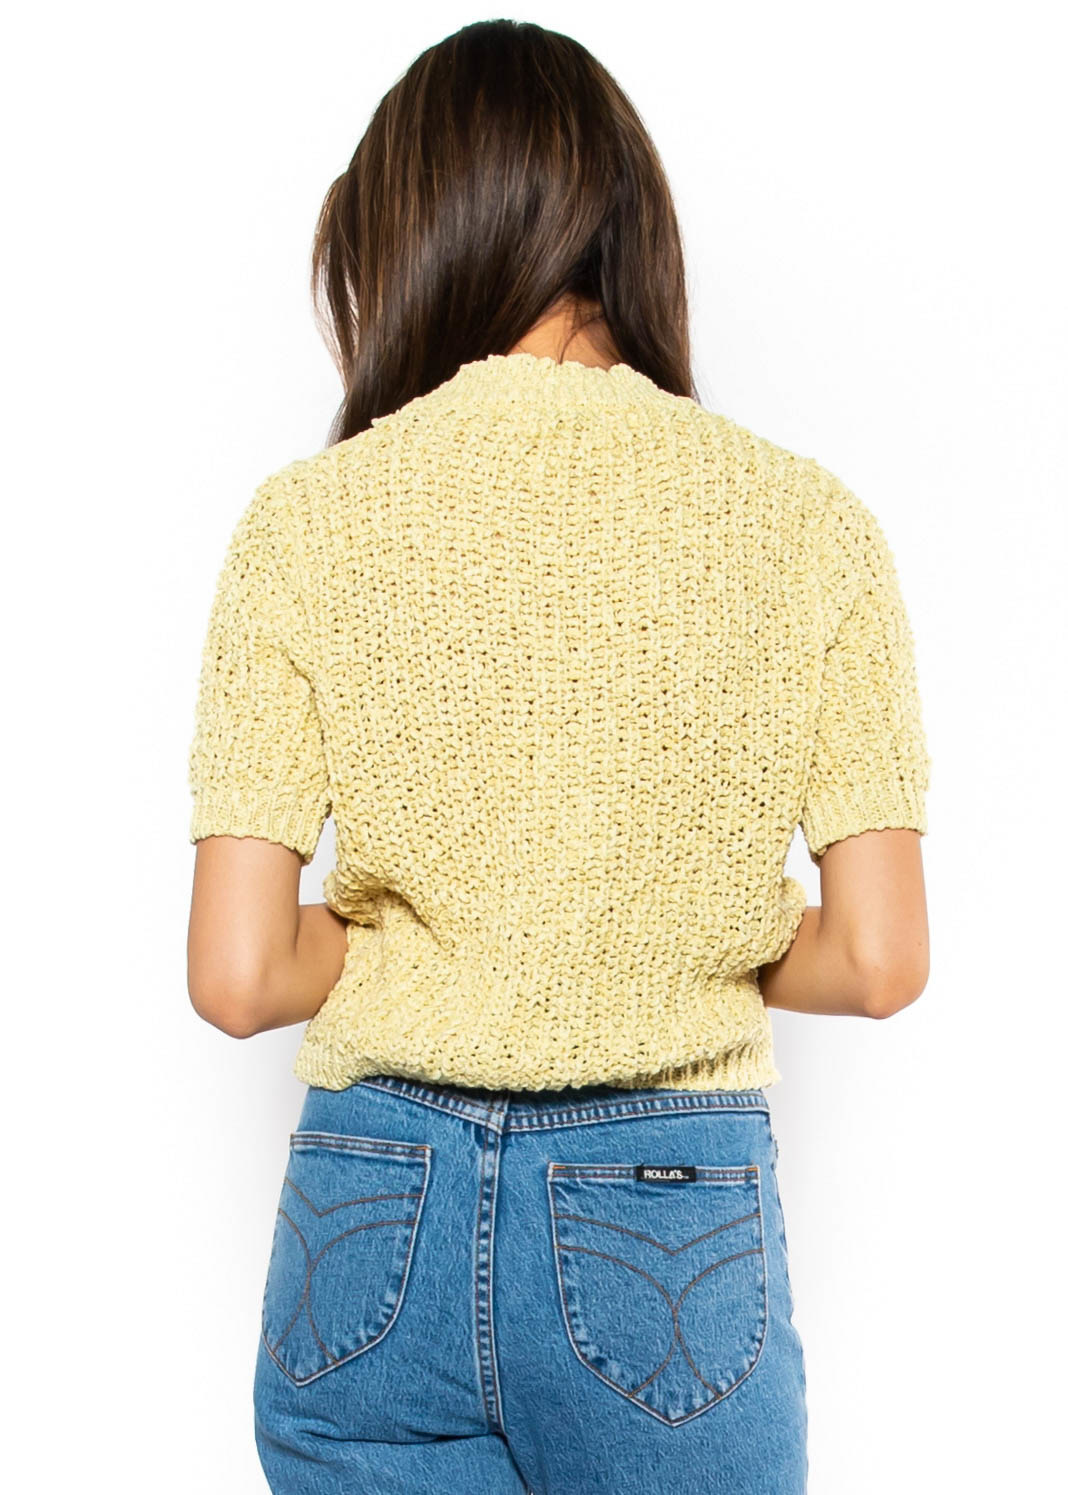 SPLASH OF COLOR KNIT TOP